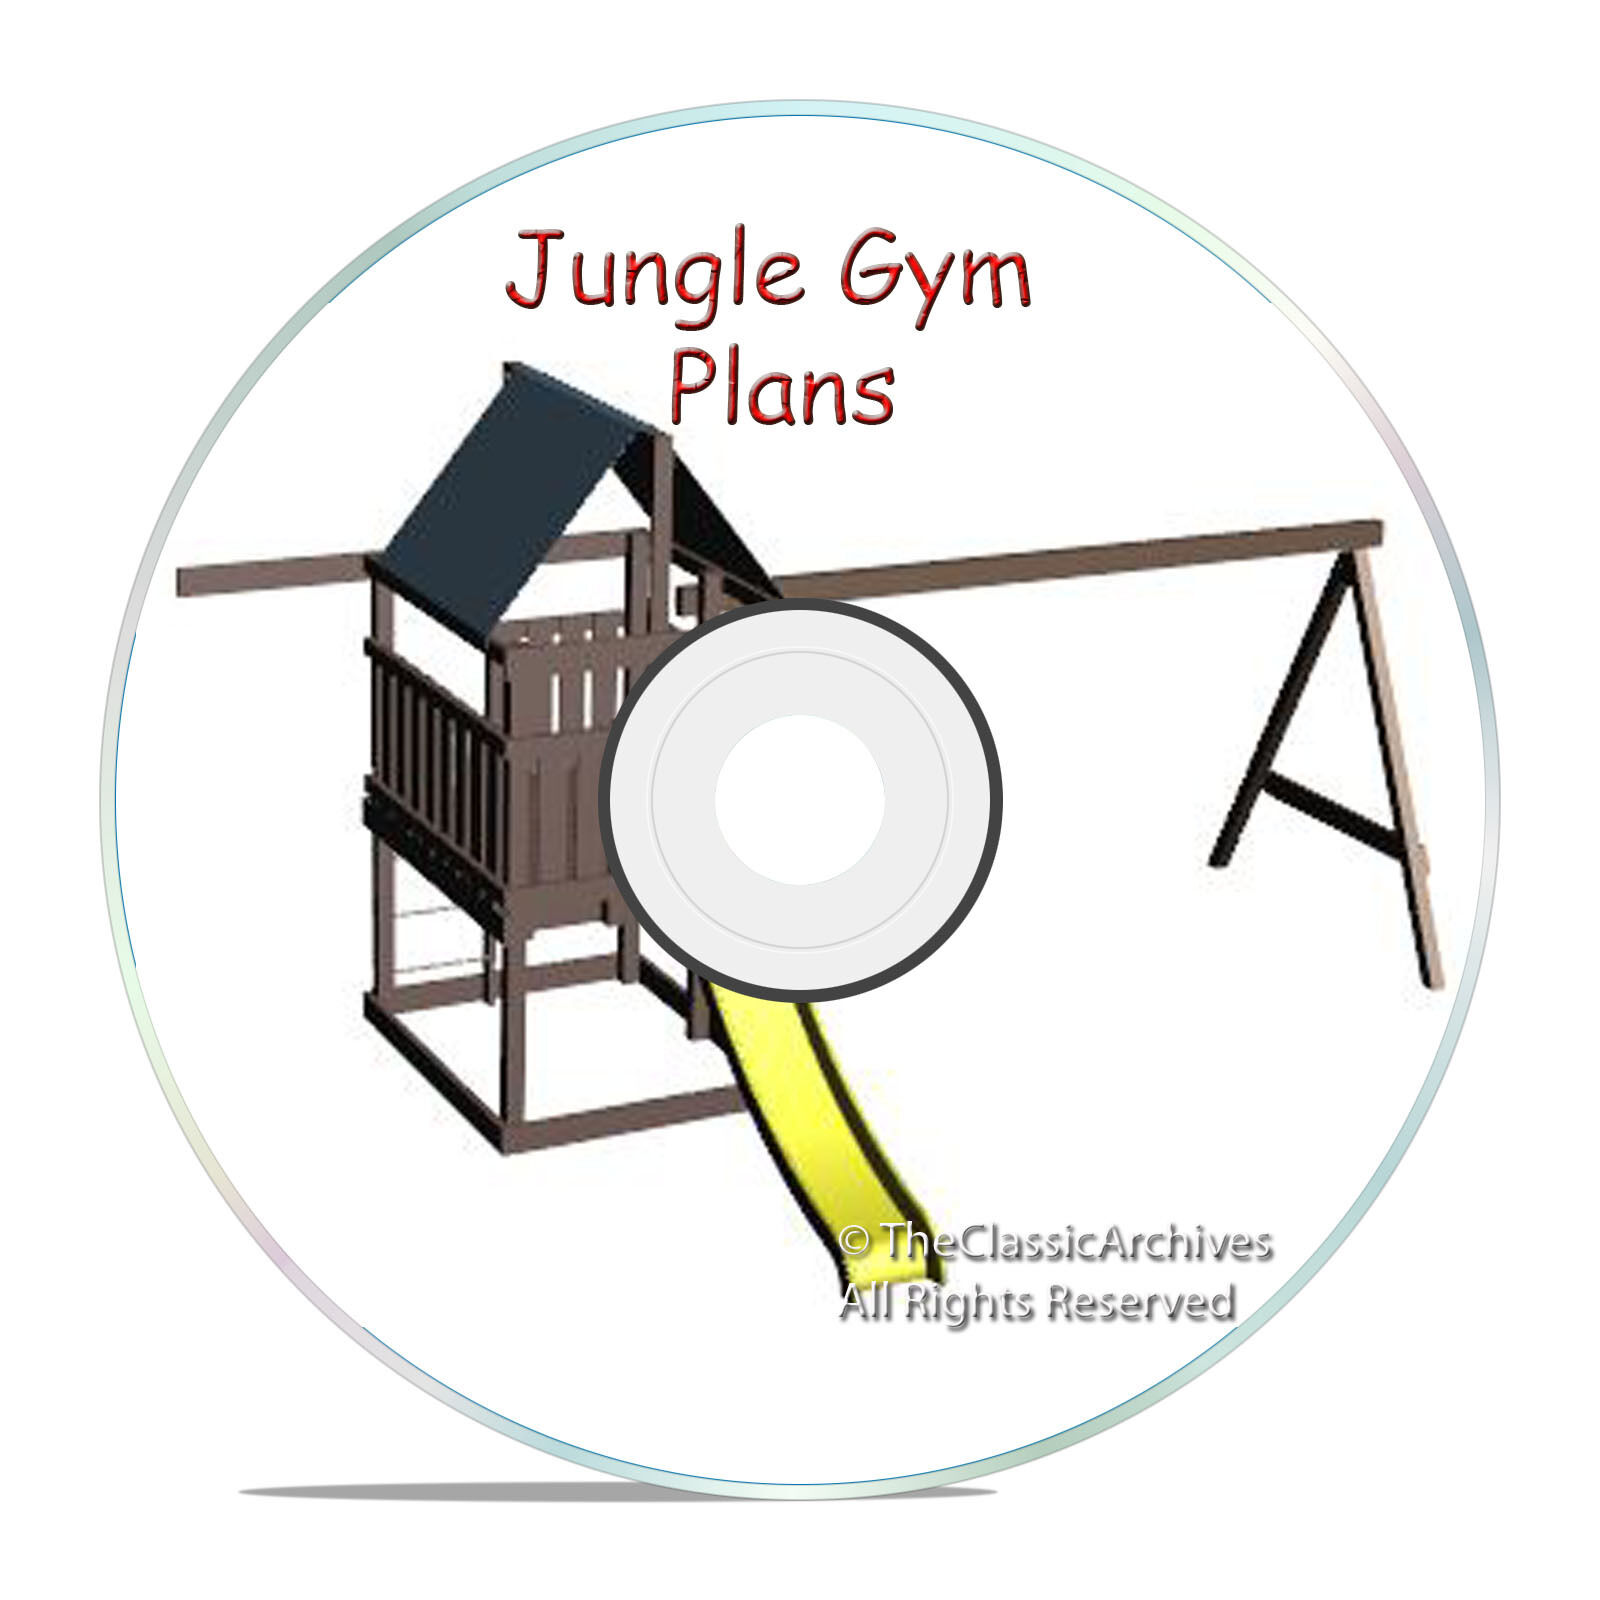 Plans to build a kids cubby playhouse backyard jungle for Jungle gym plans